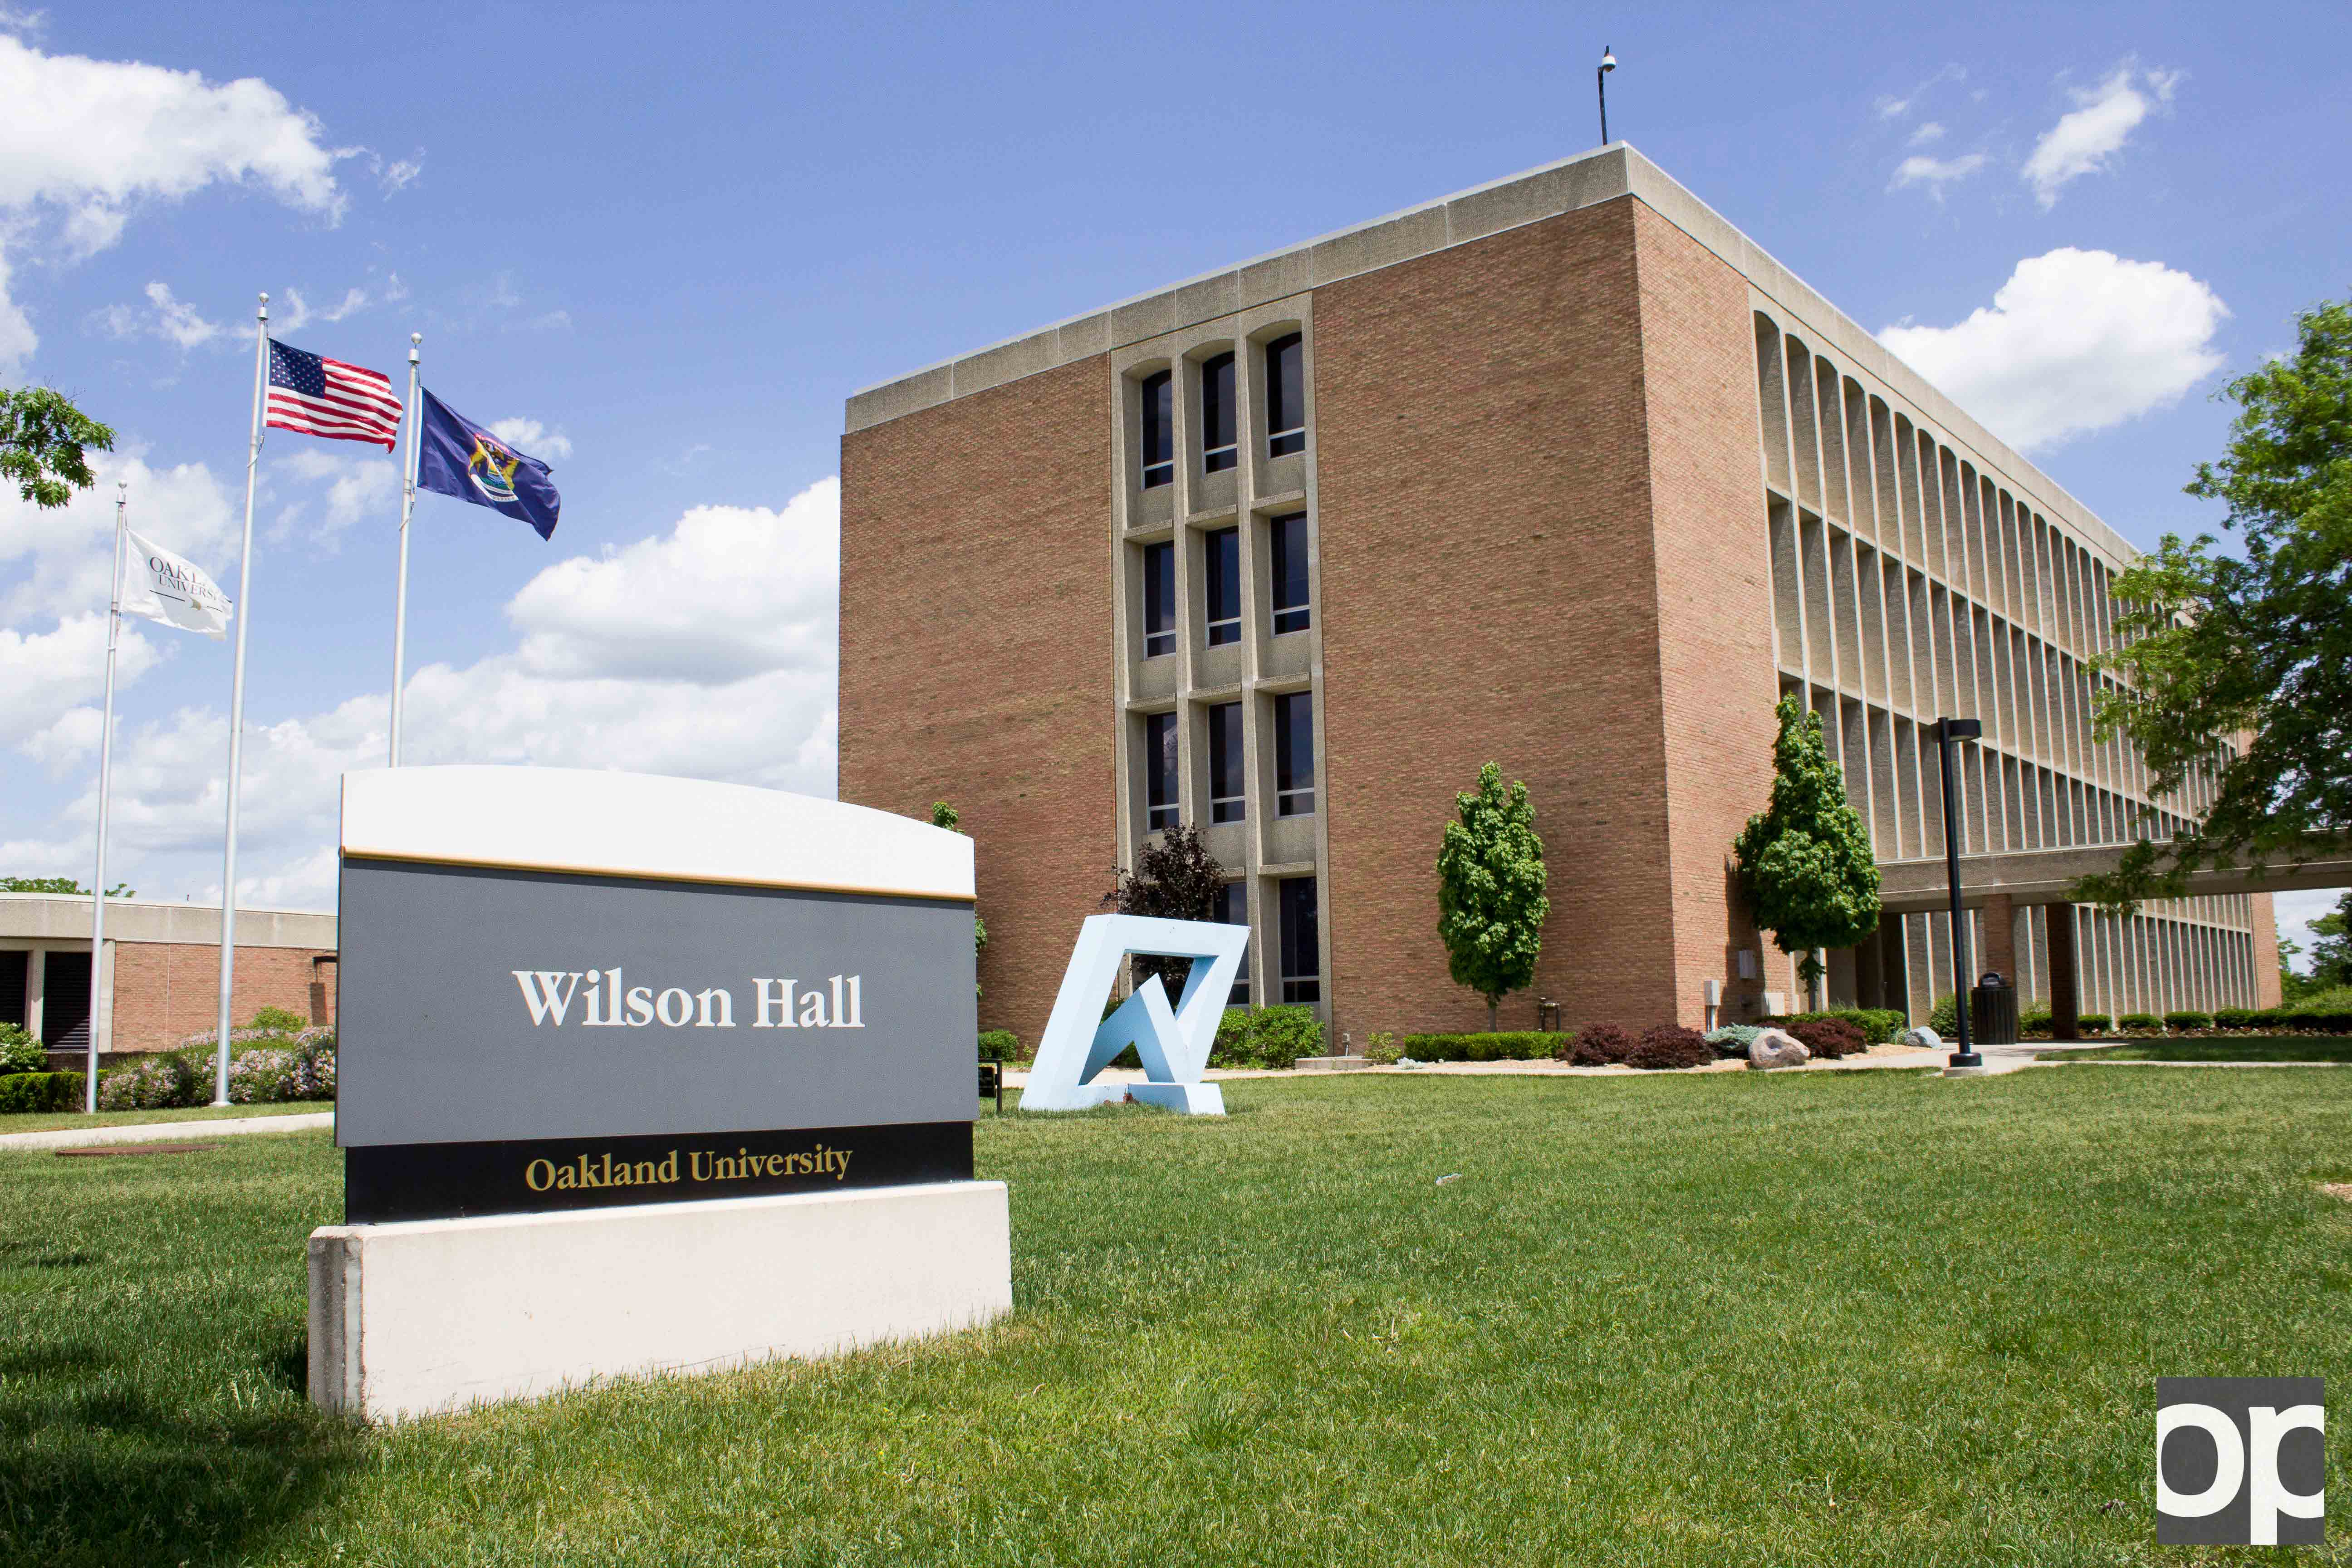 The office of the chief diversity officer is located in Wilson Hall.